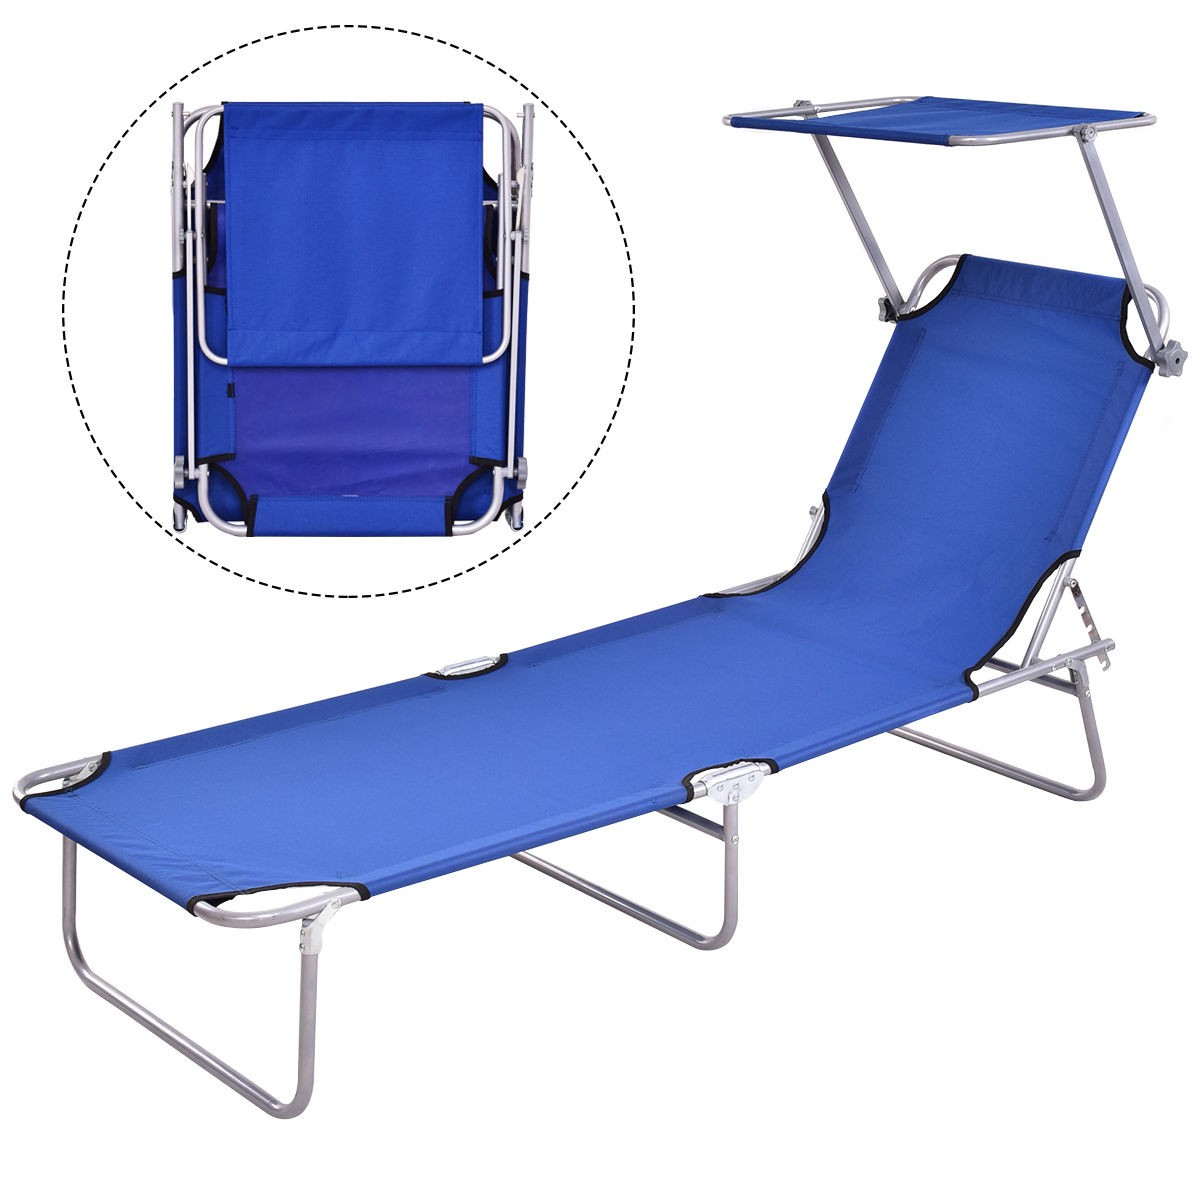 Details About Folding Outdoor Relax Chaise Lounge Beach Chair Bed Camping Recliner W/canopy Within Popular Folding Patio Lounge Beach Chairs With Canopy (View 9 of 25)